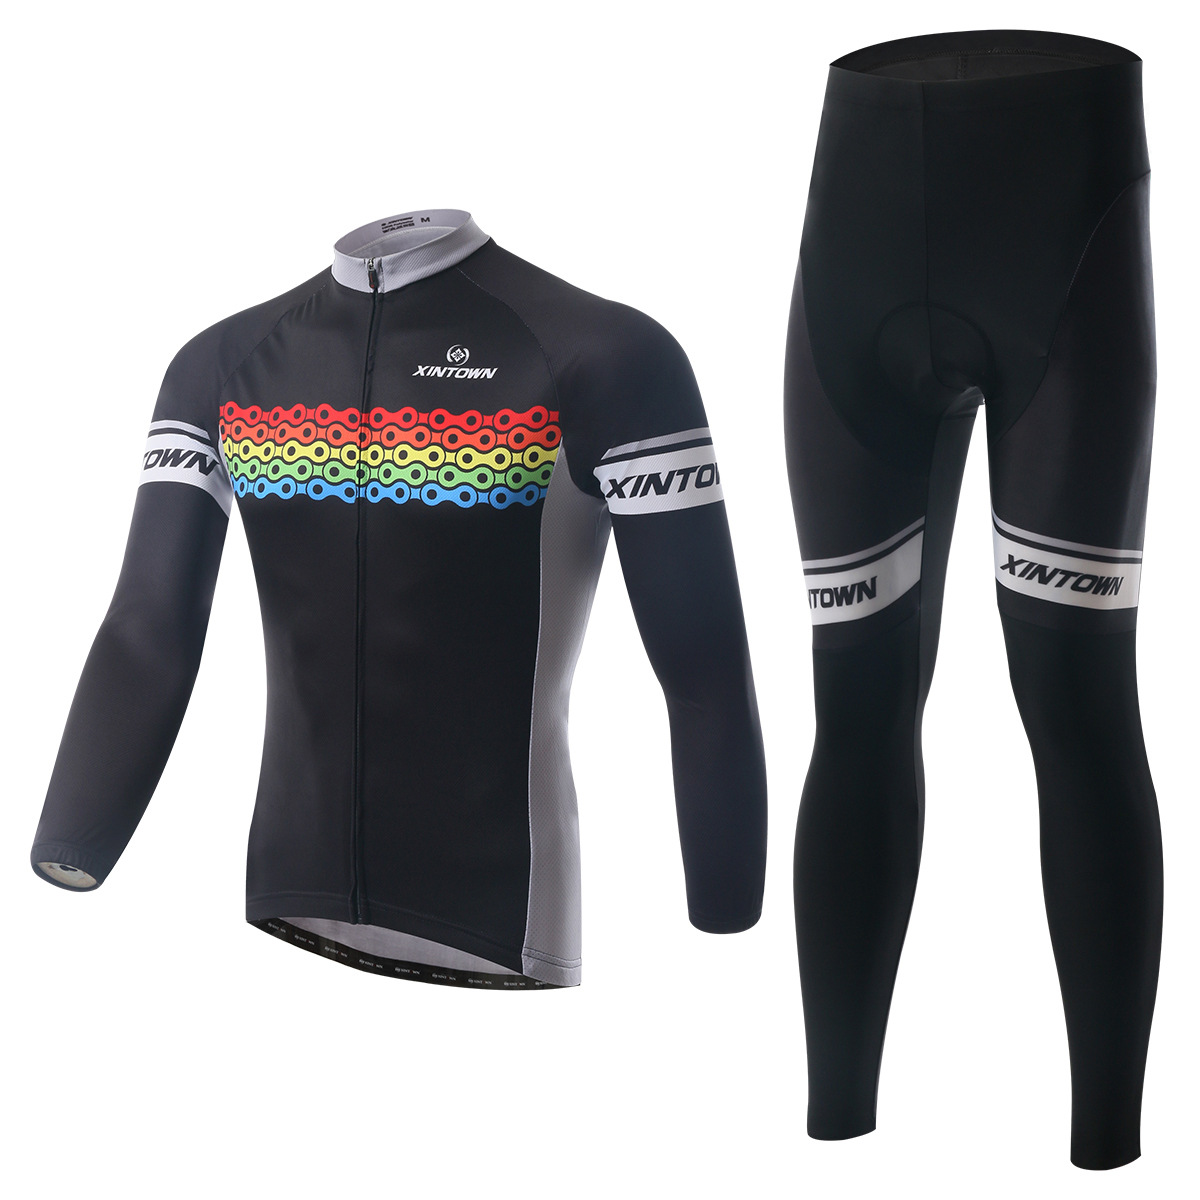 XINTOWN new chain color bike riding jersey long-sleeved suit wear cycling suits summer sweat-absorbent quick-drying shirt